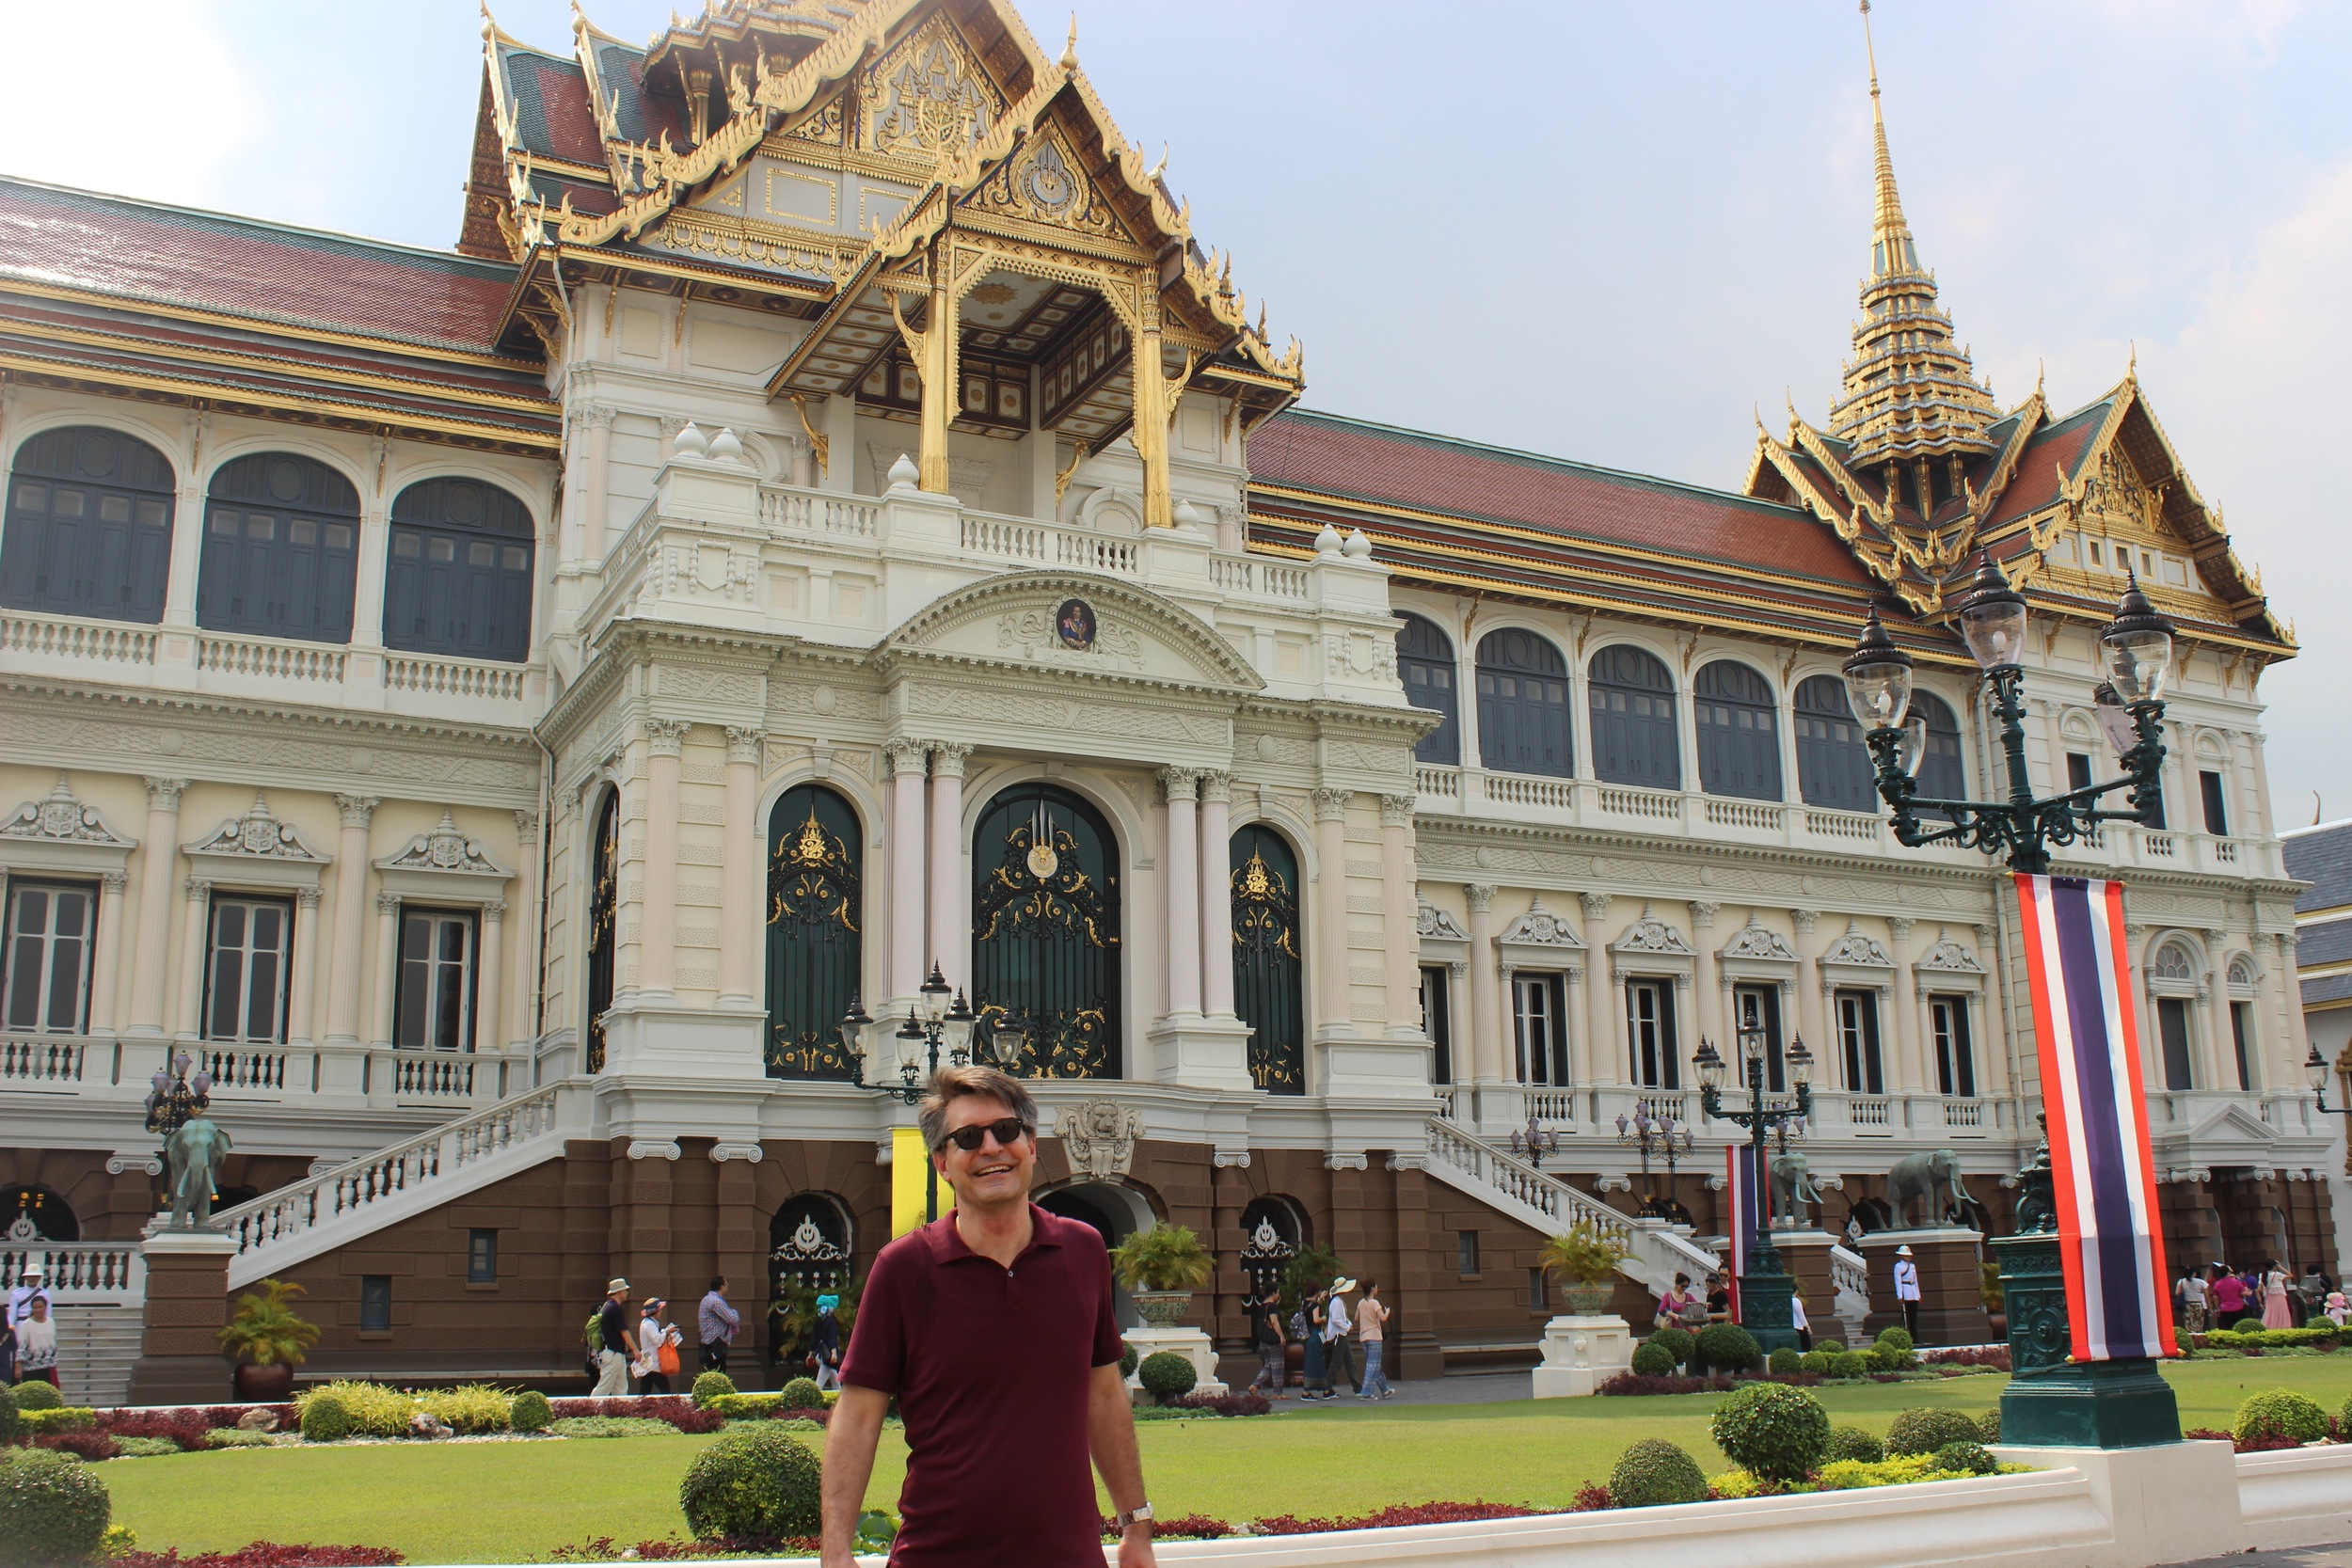 Roaming around the Grand Palace